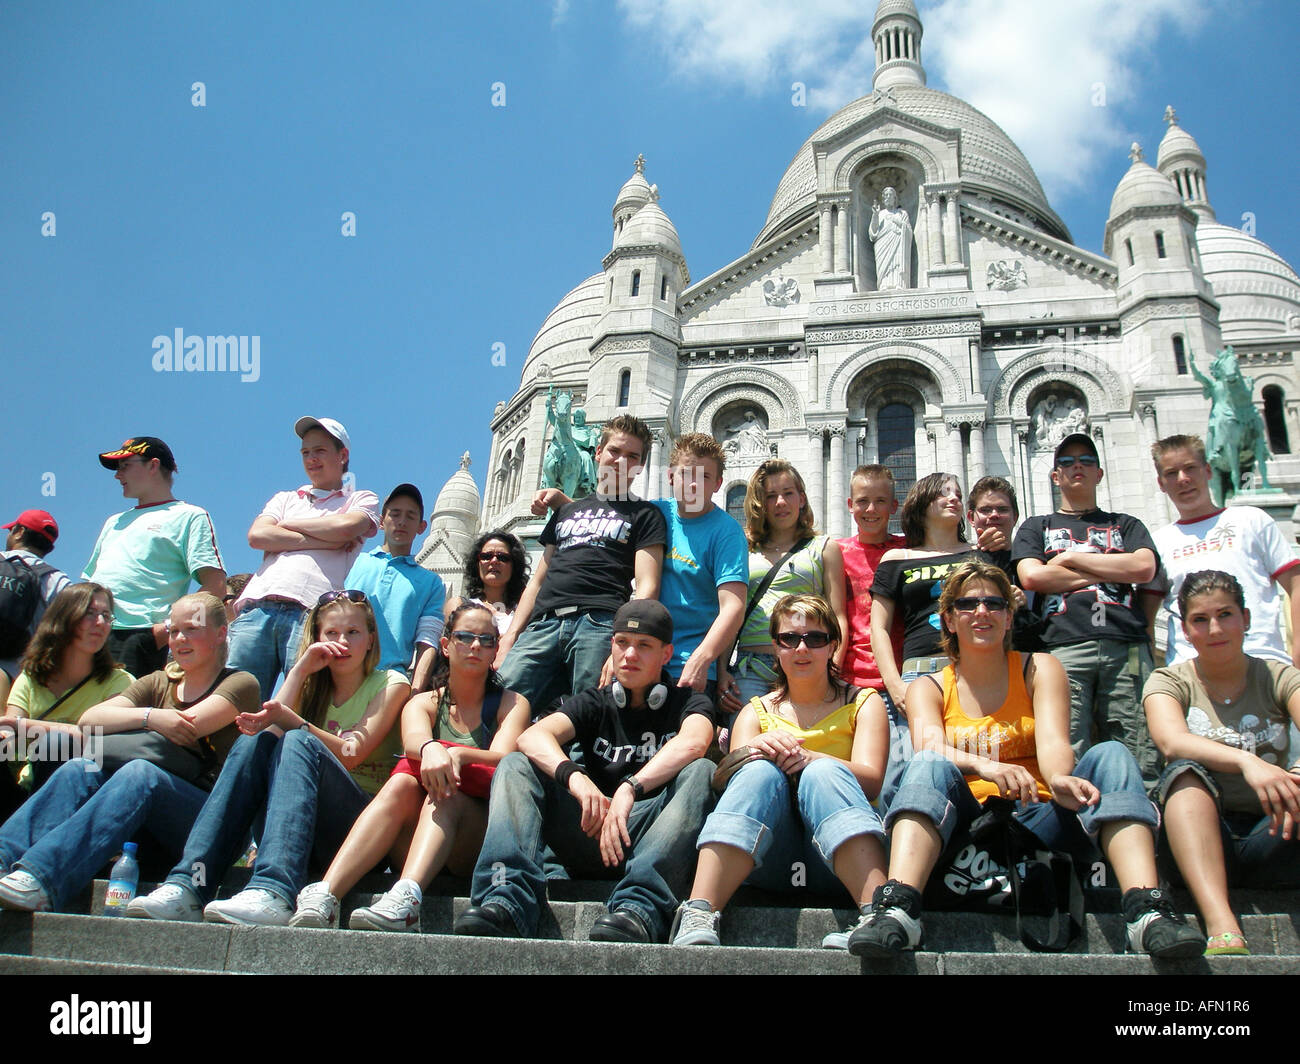 Group of adolescent students sitting on steps in front of Sacre Coeur Montmartre Paris France - Stock Image